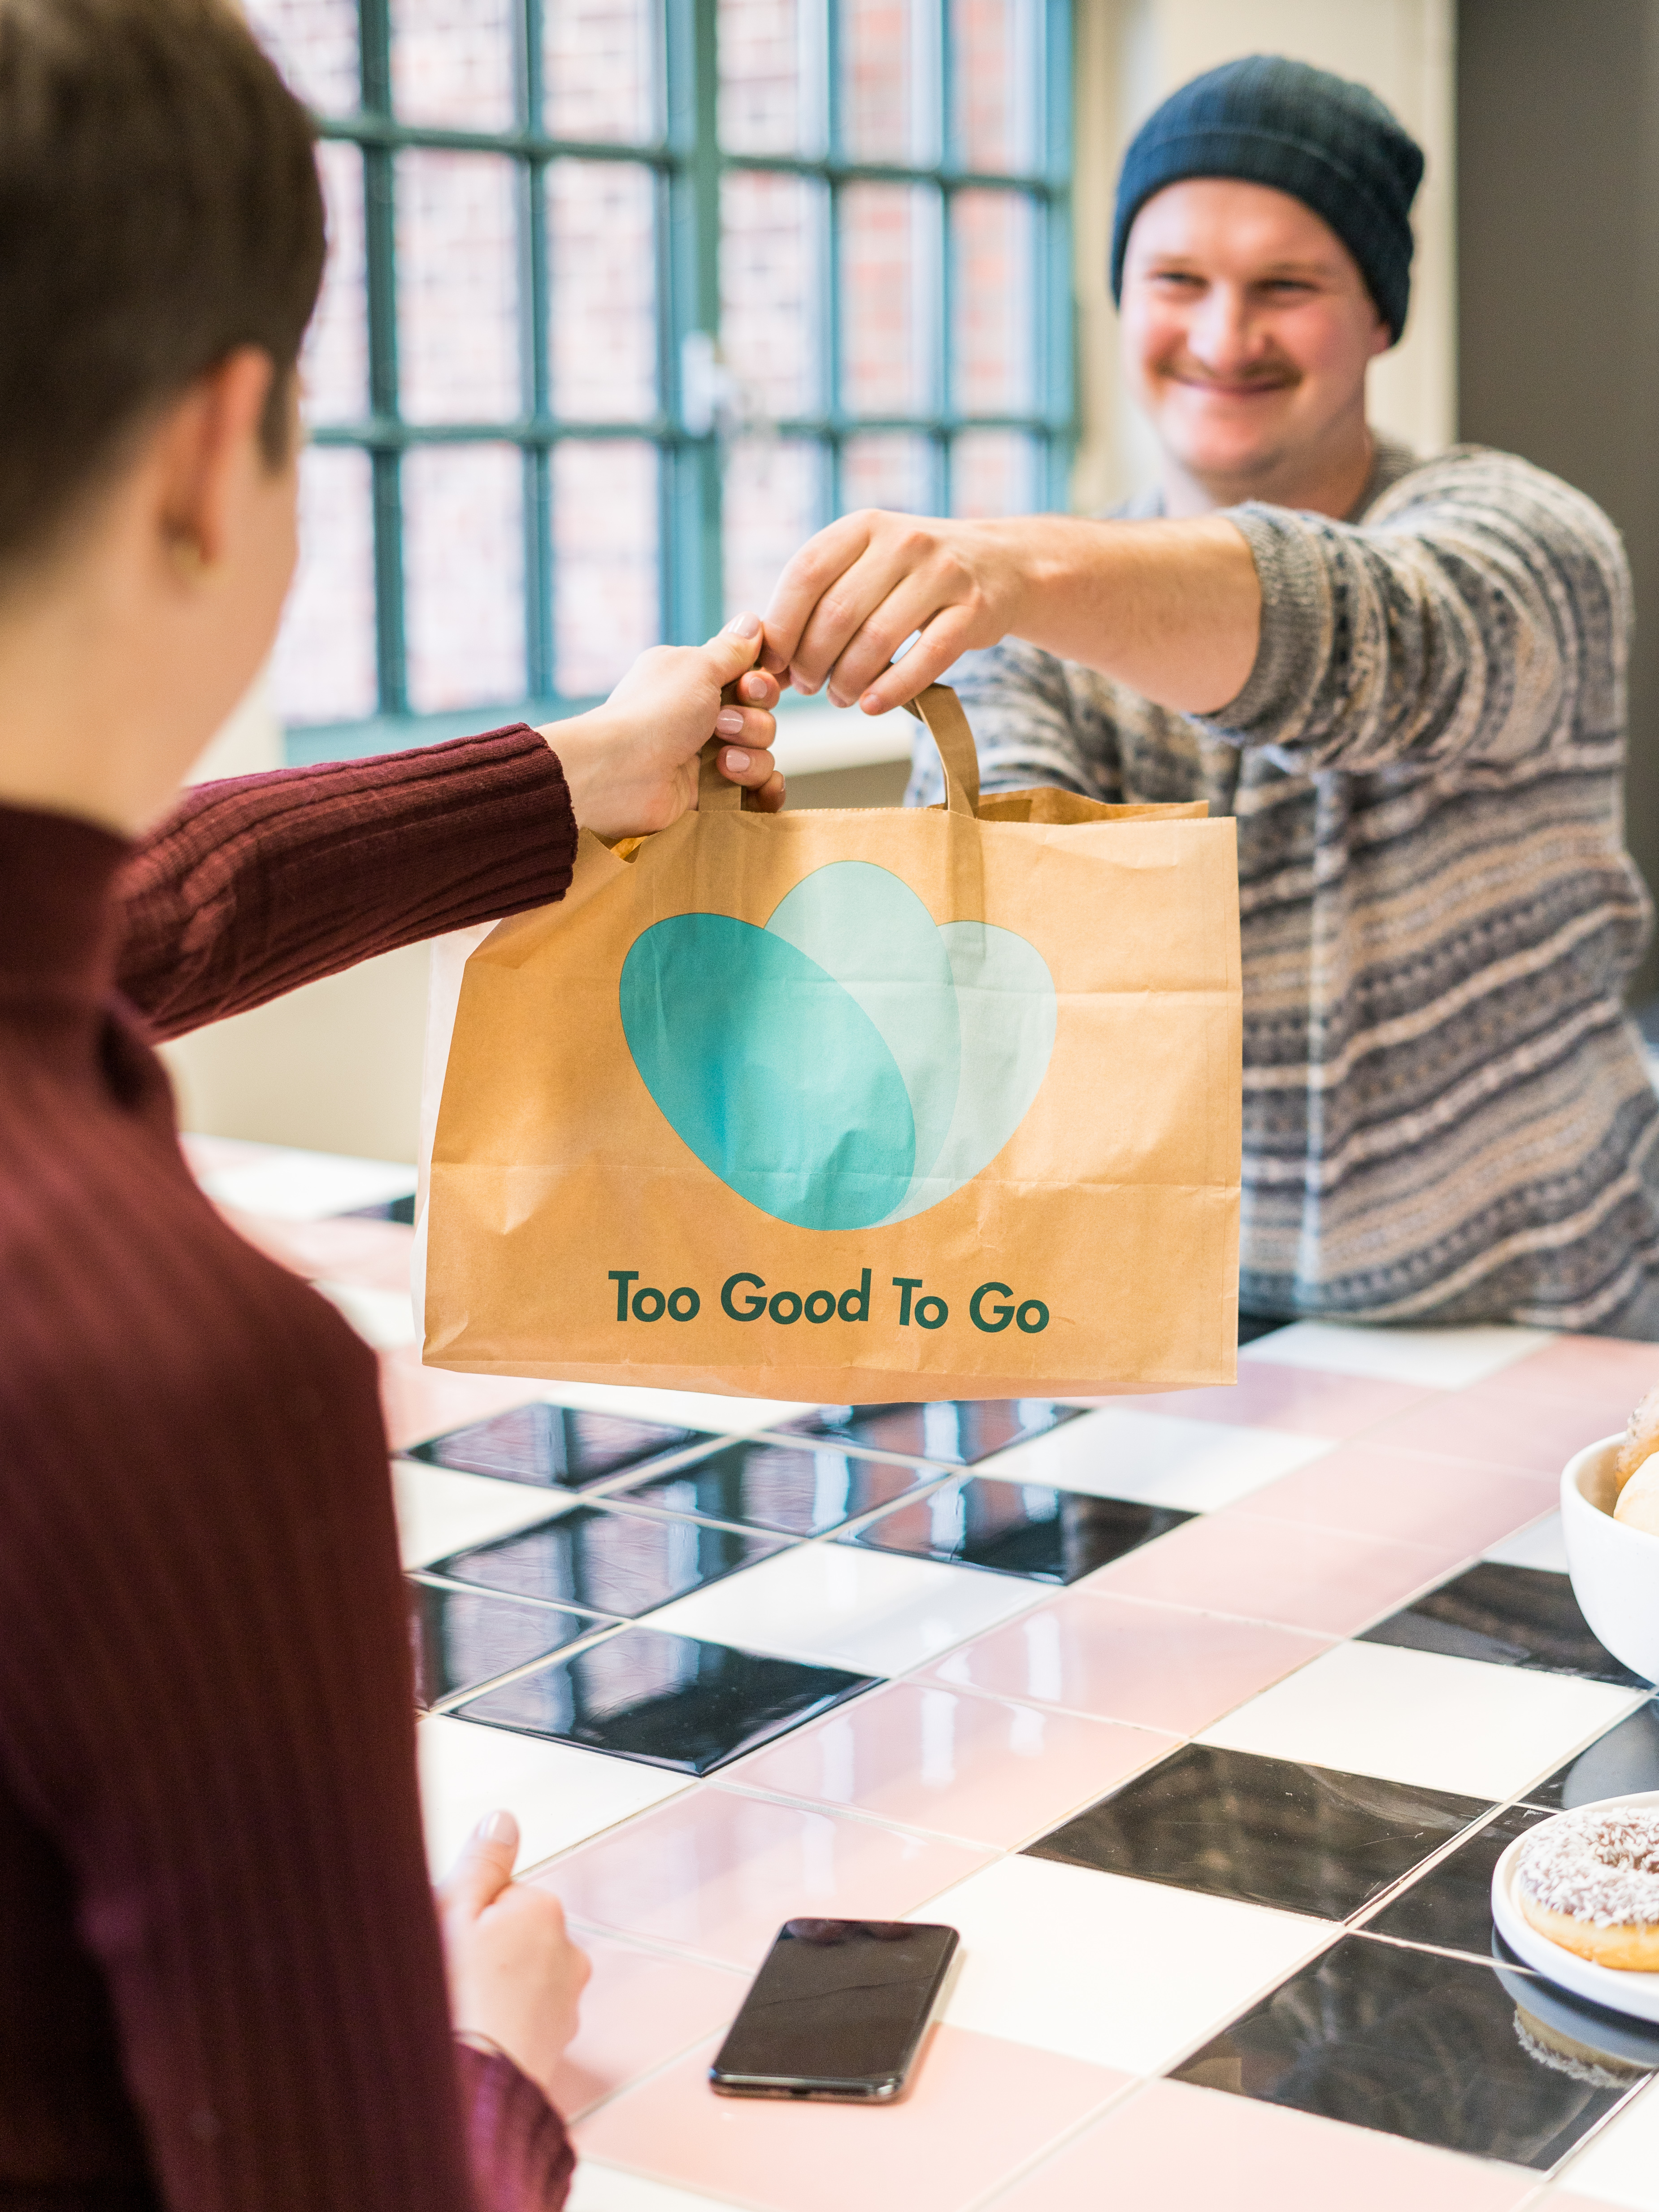 Too good to go Lieferservice App